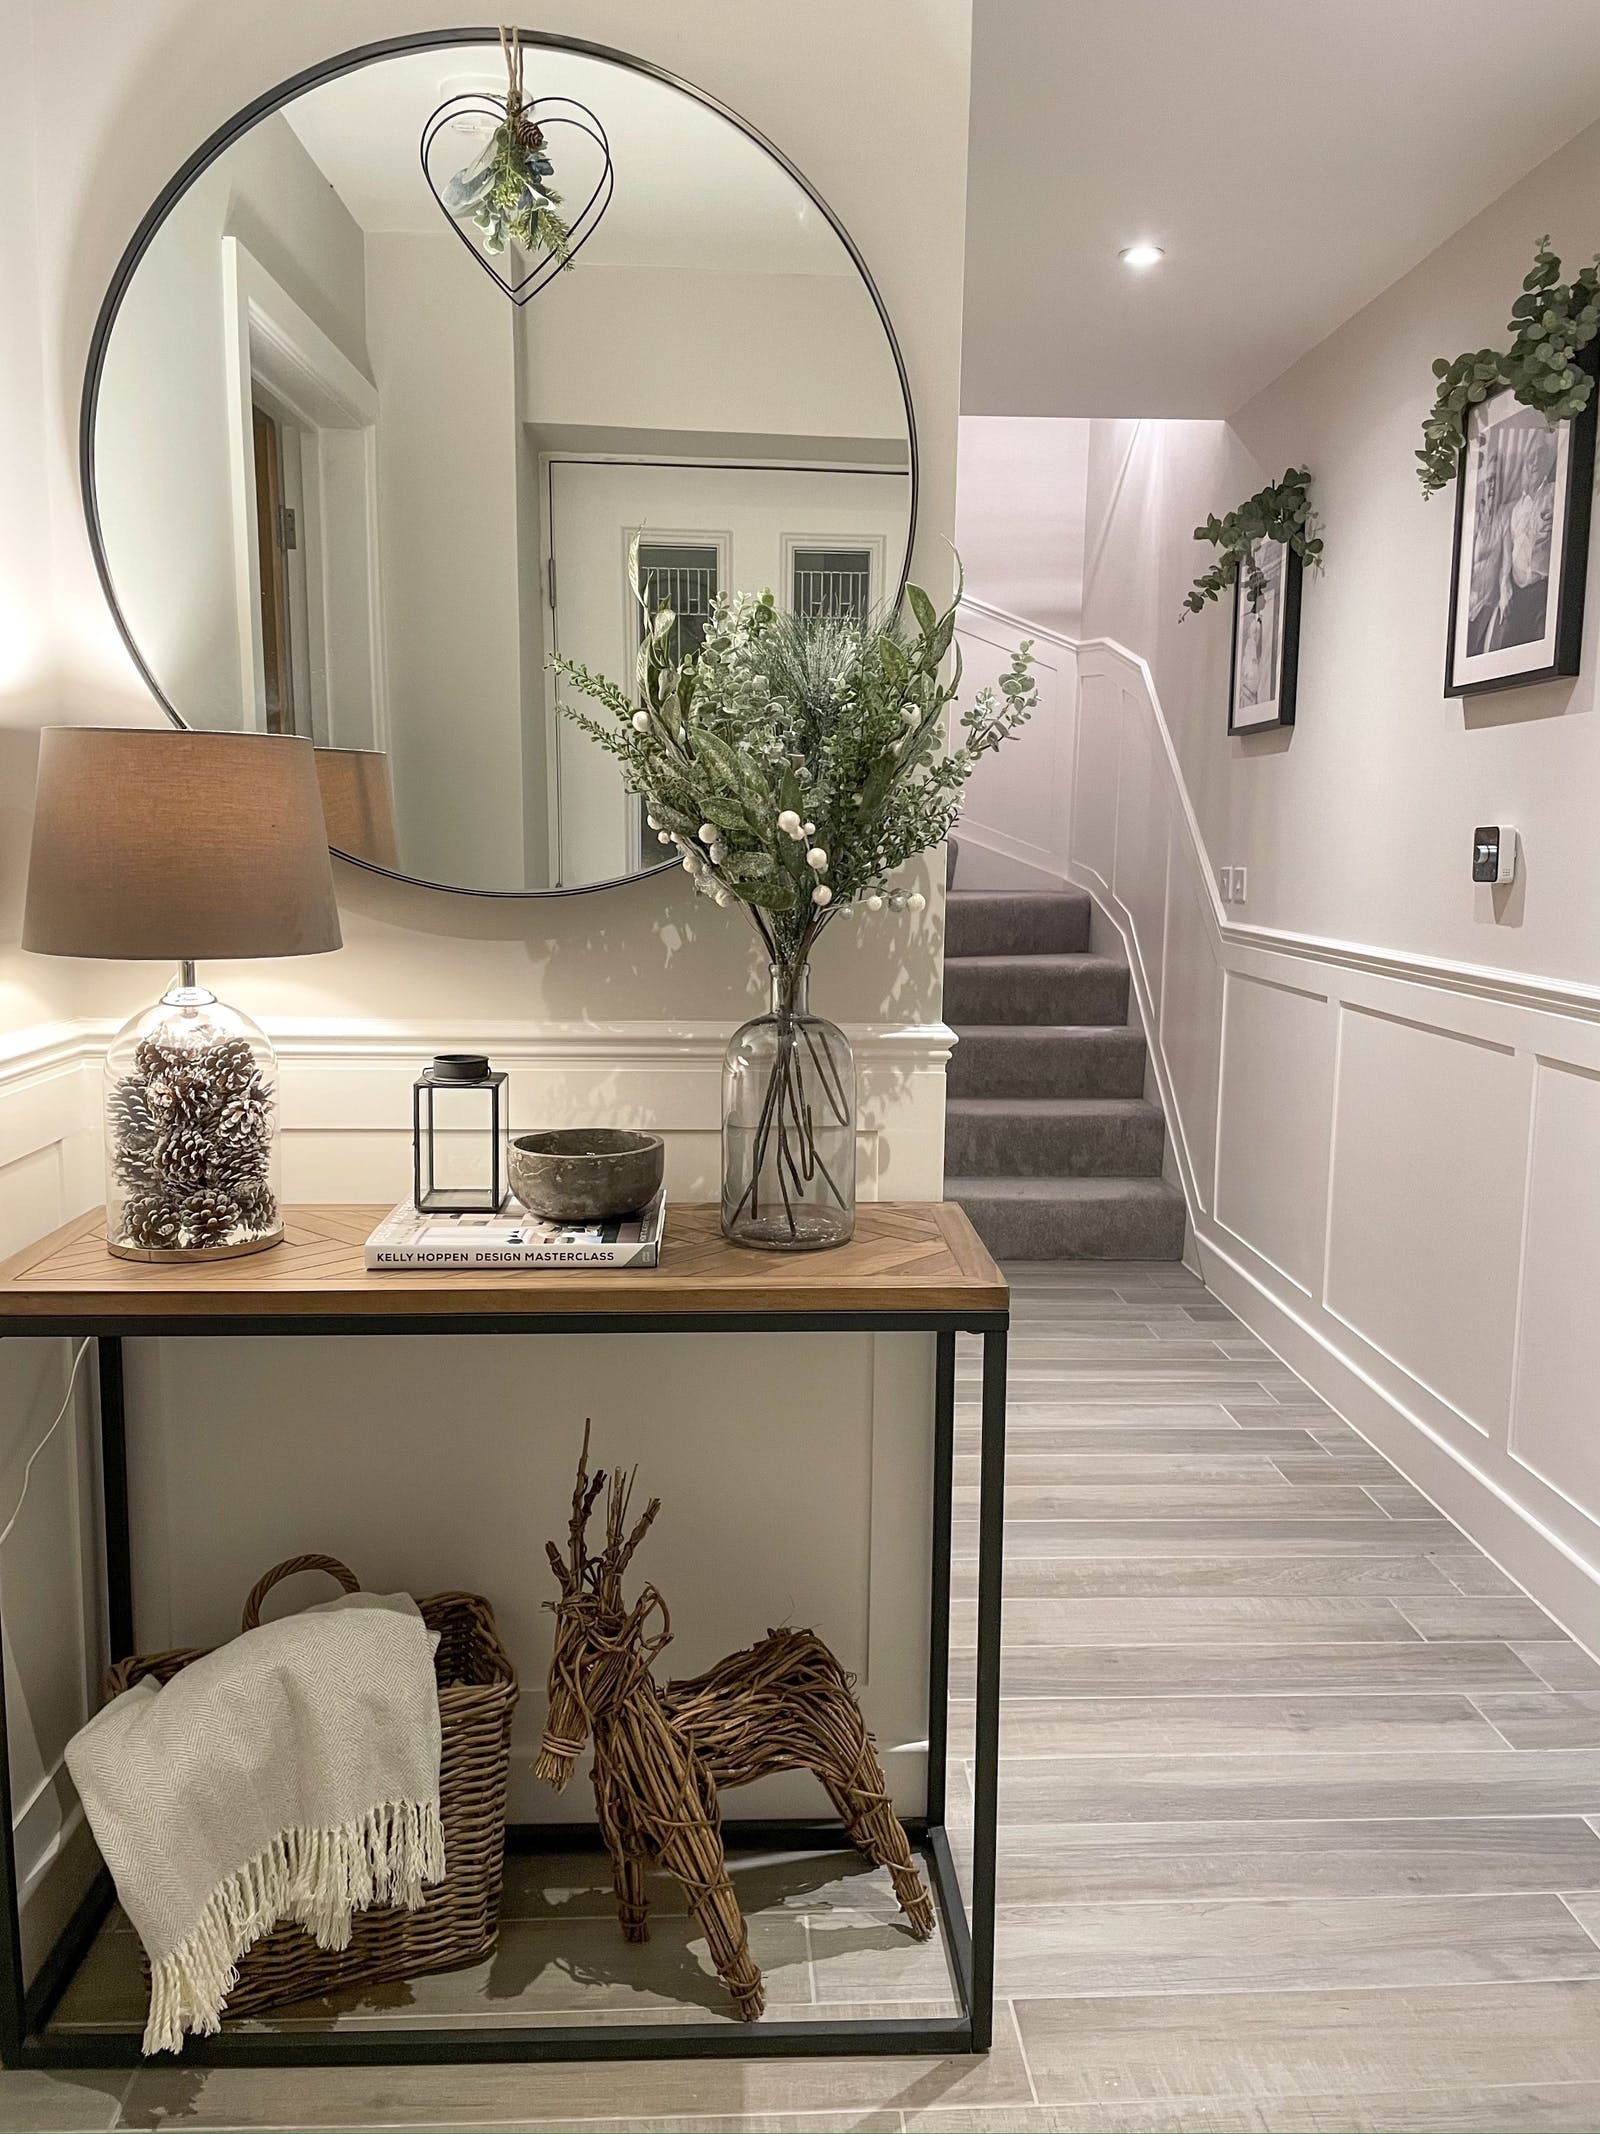 A hallway decorated in faux greenery